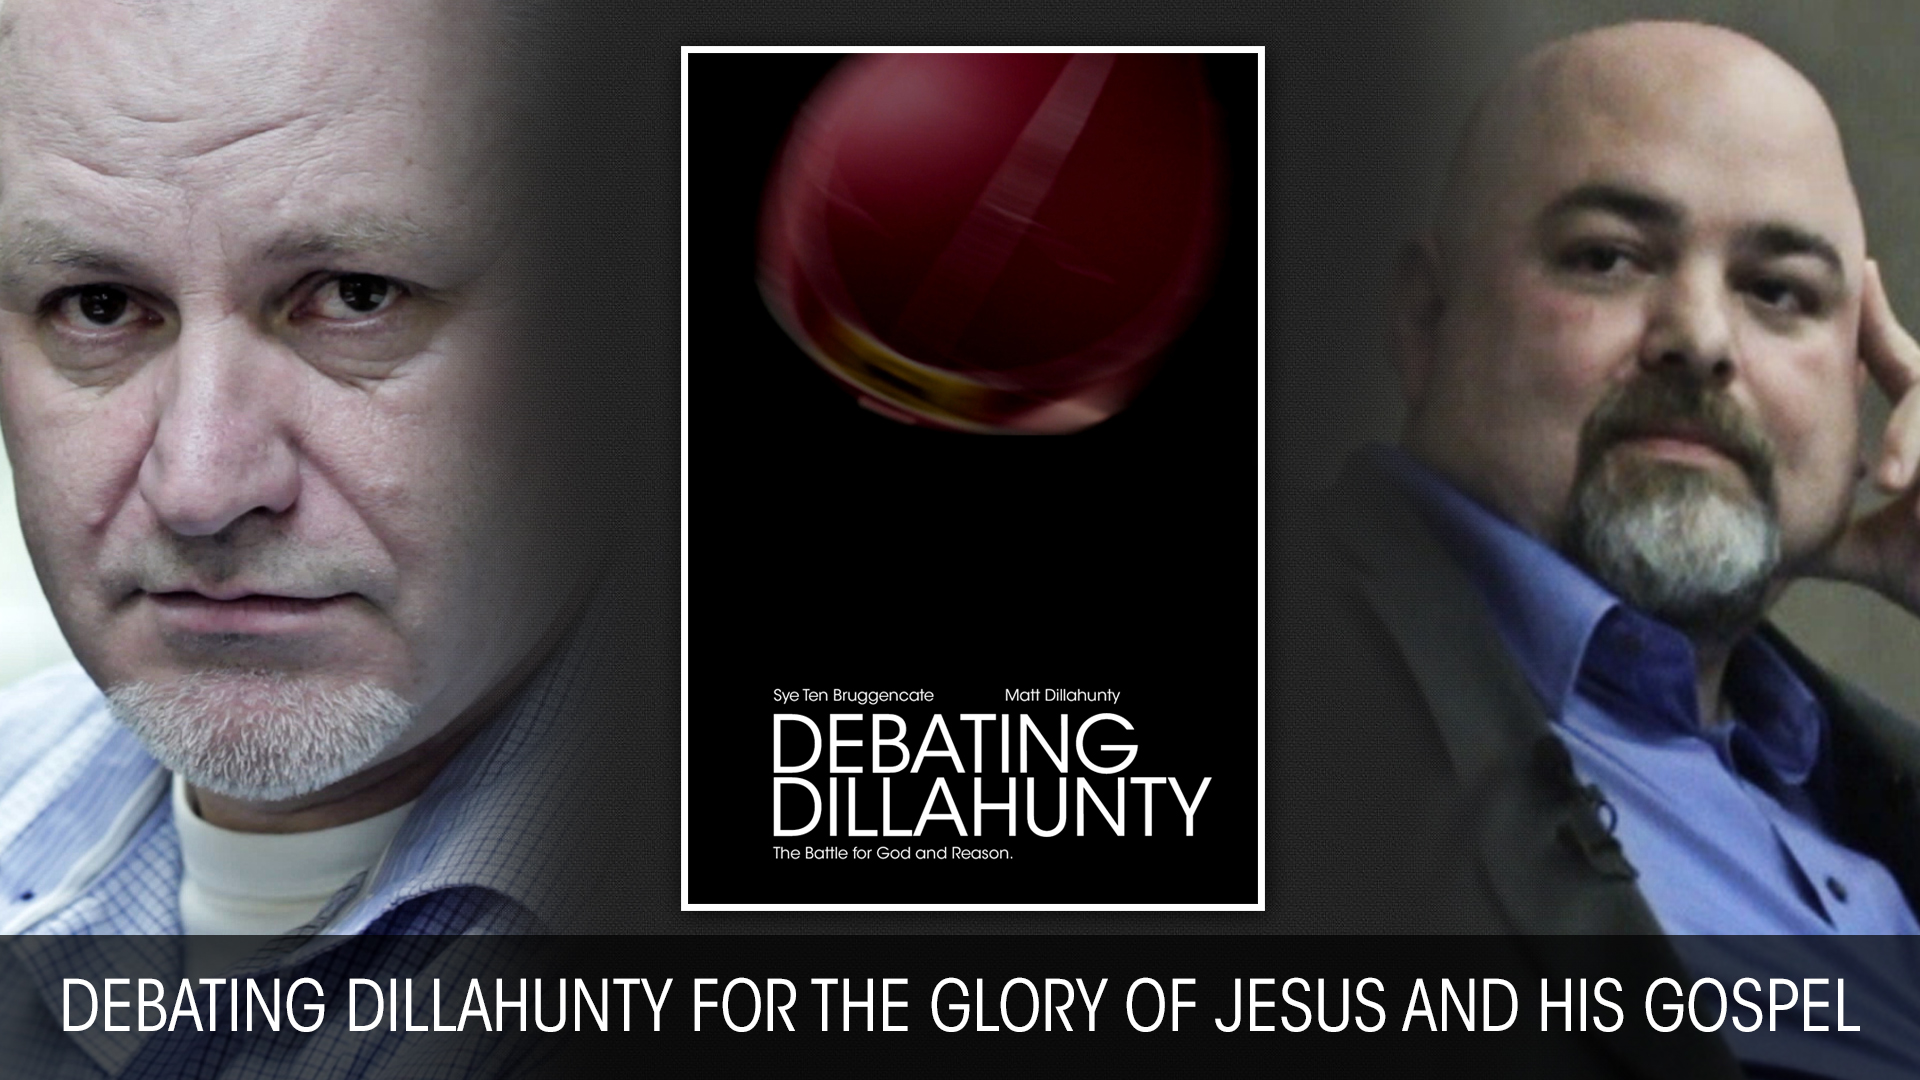 Debating Dillahunty for the Glory of Jesus and His Gospel